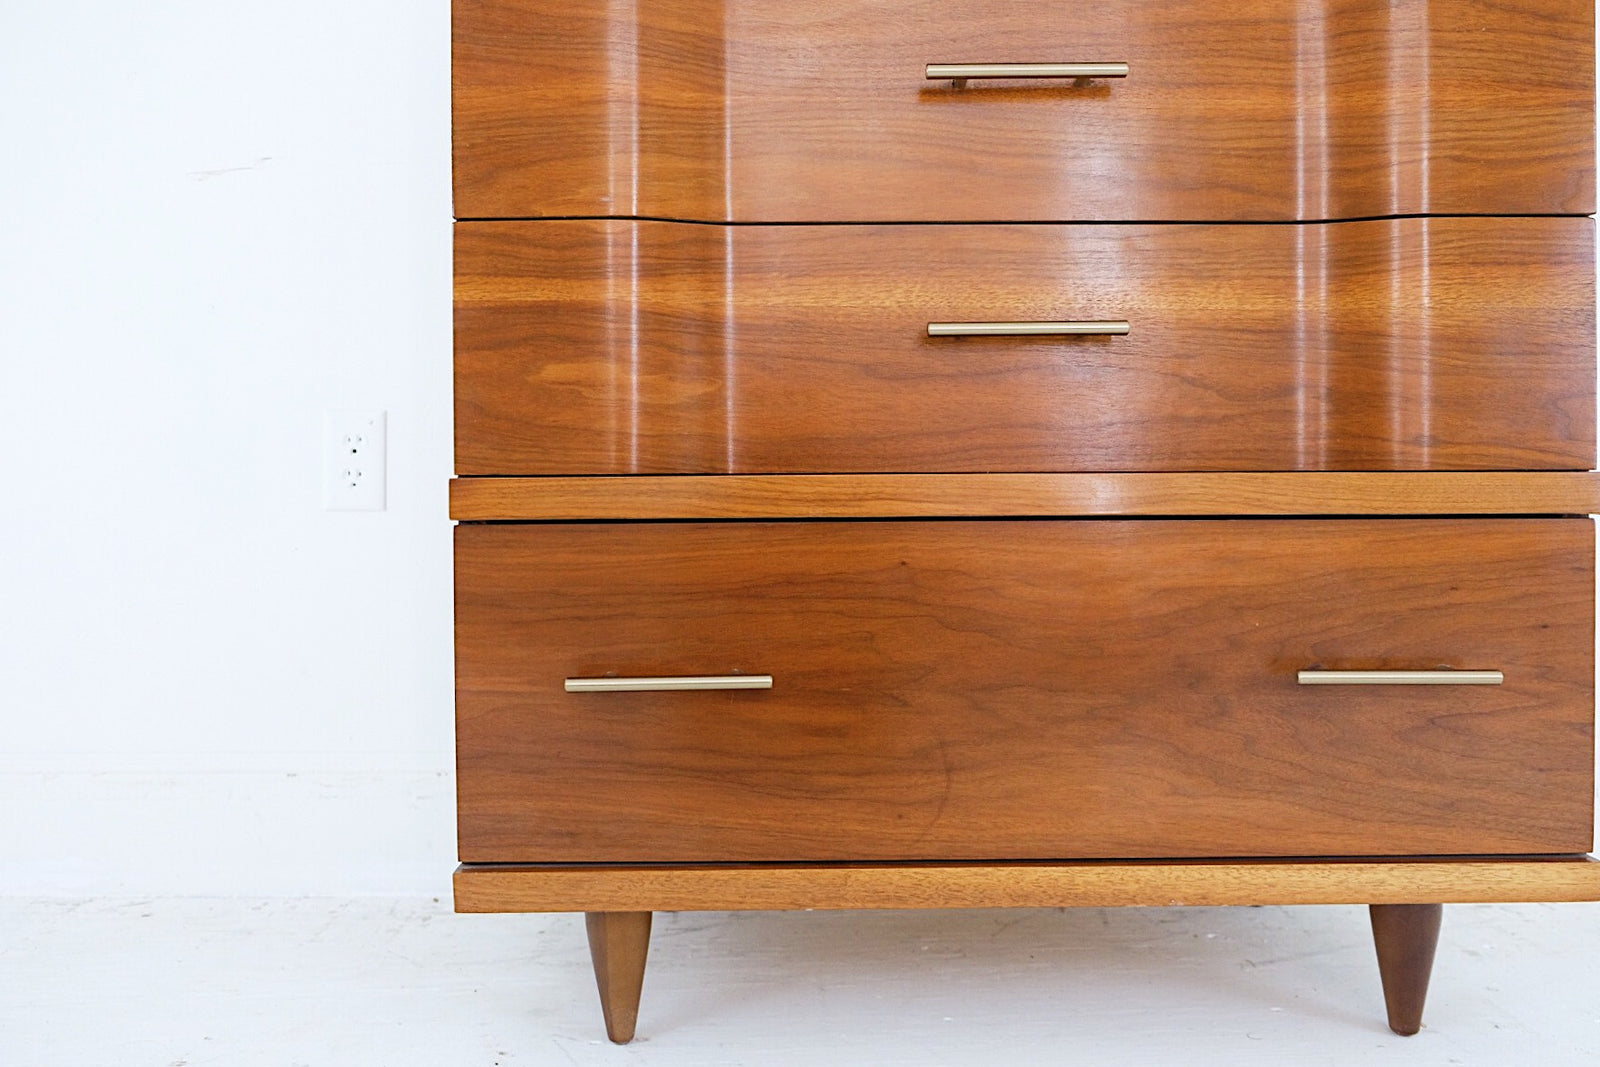 Johnson Carper Tall Four Drawer Fashion Trends Dresser Mid Century Modern Brass Modern Handles